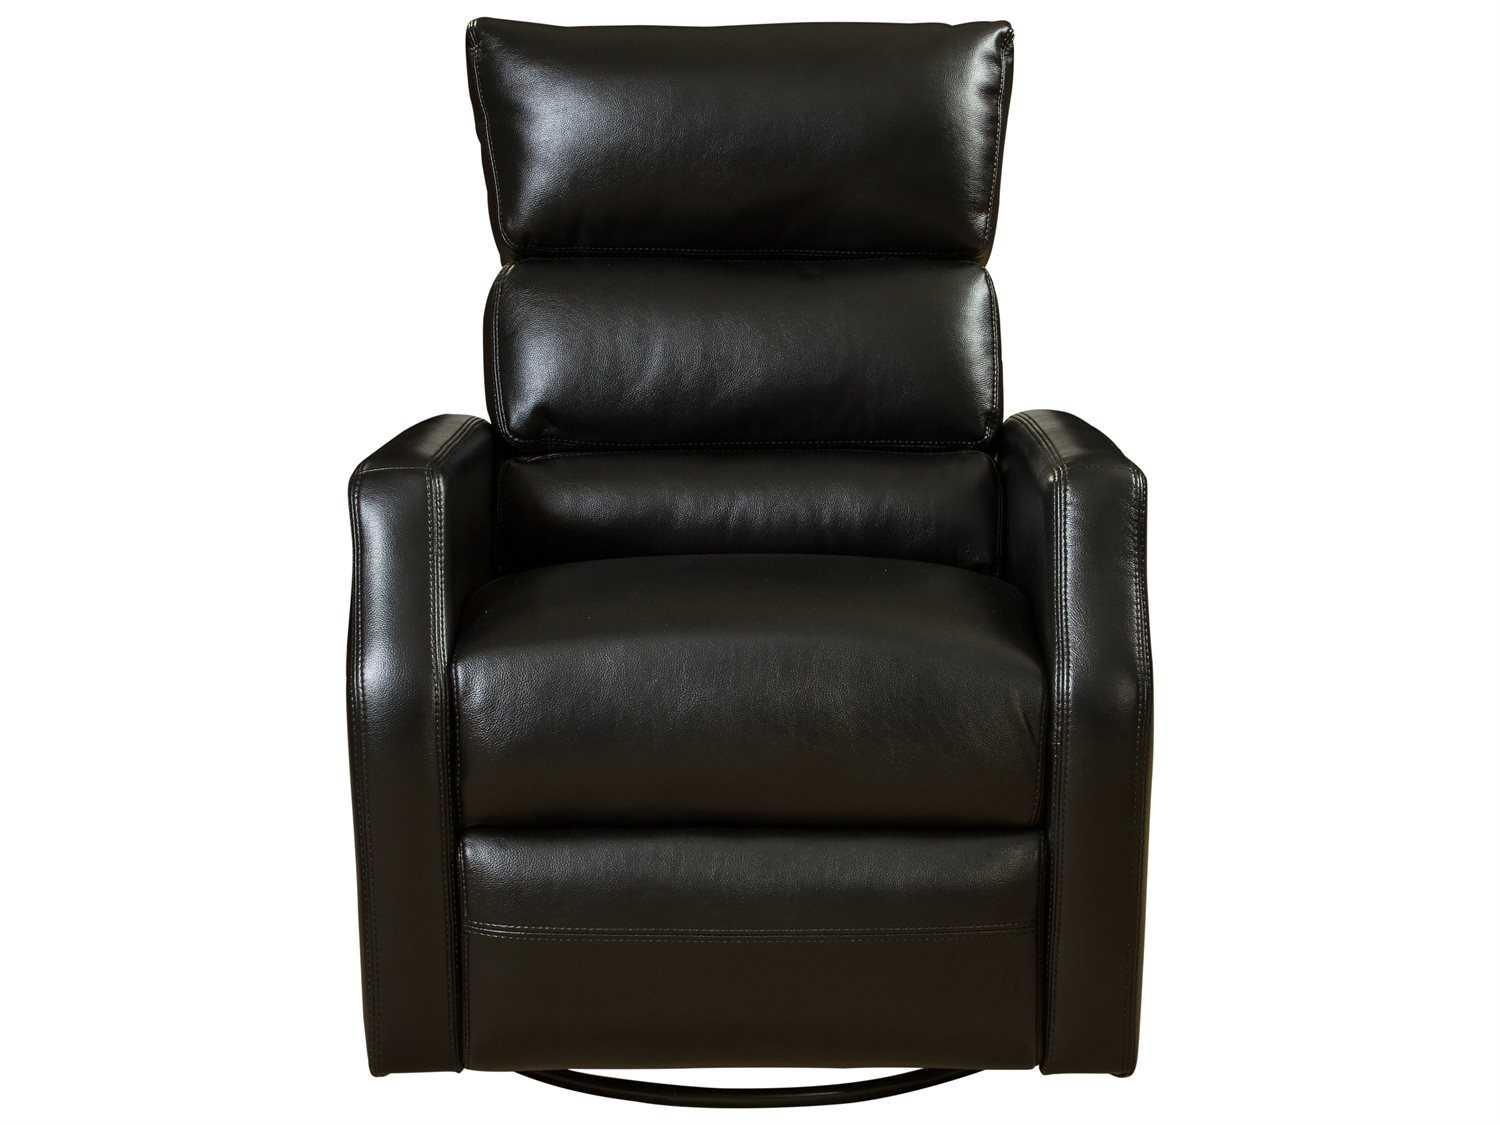 non wood adirondack chairs outdoor lounge chair sale barcalounger basics collection talbot swivel glider recliner | bar81061211099